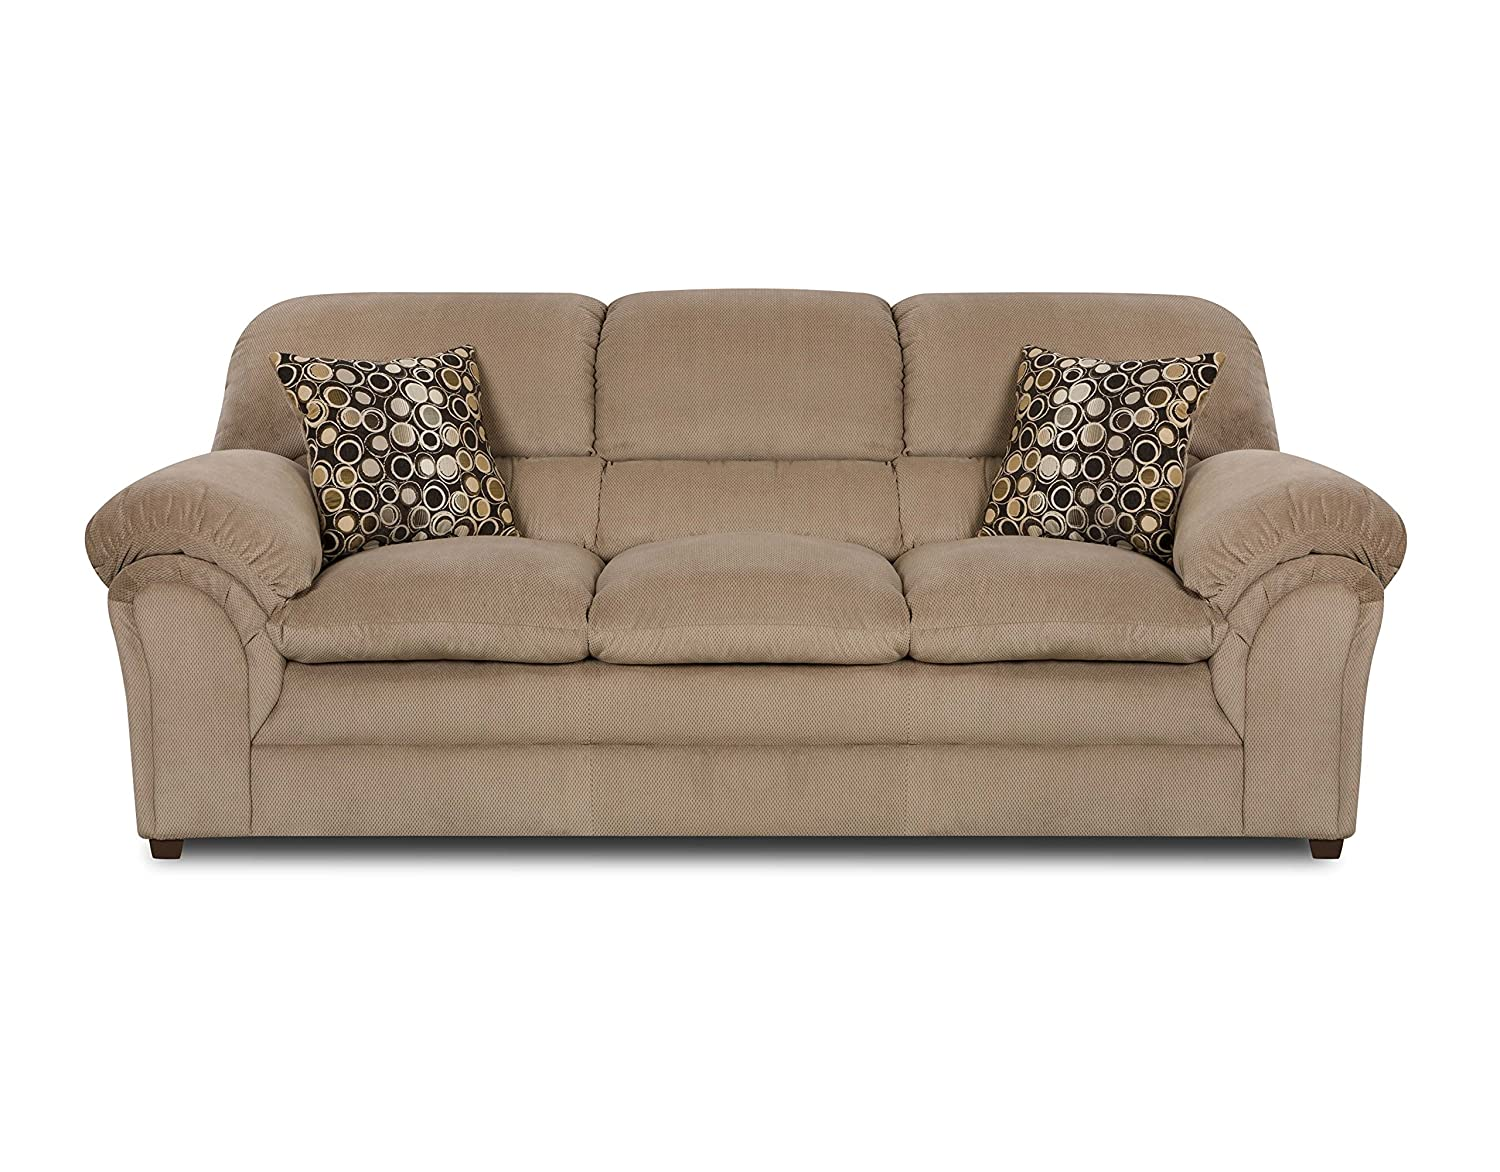 Simmons Upholstery 6150-03 Harper Cocoa Sofa